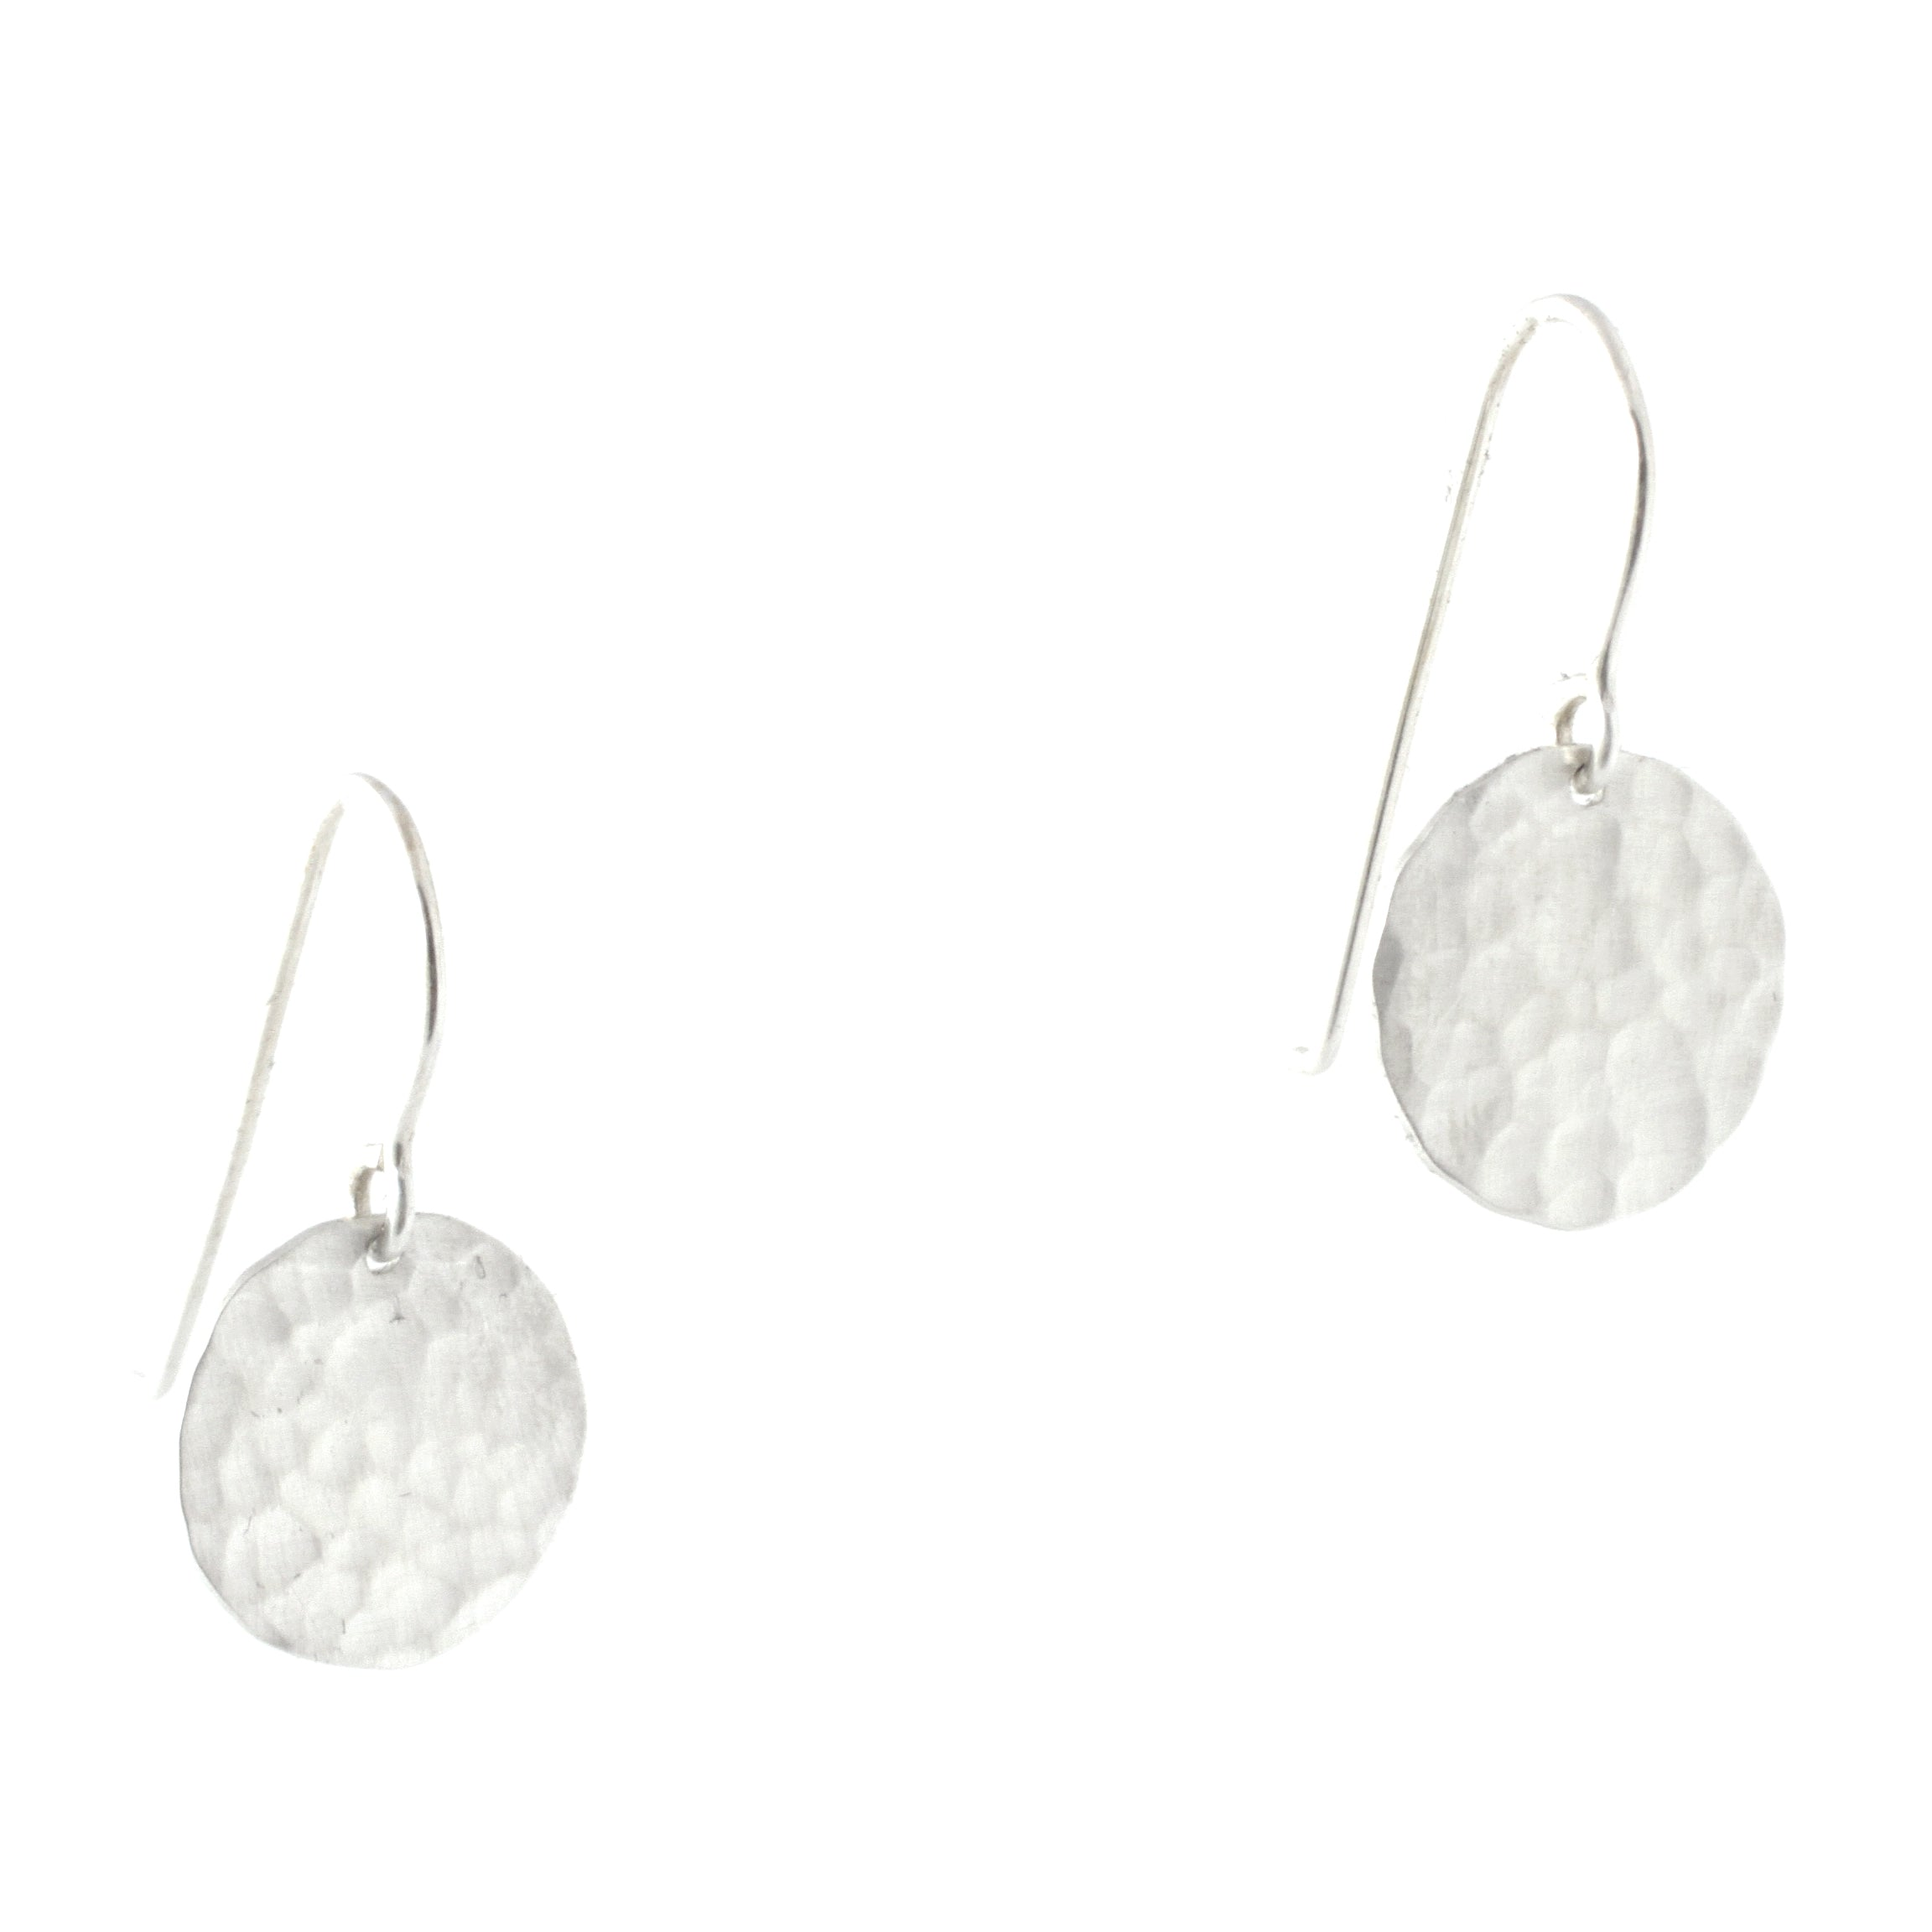 Luna Hammered Earrings (Small)